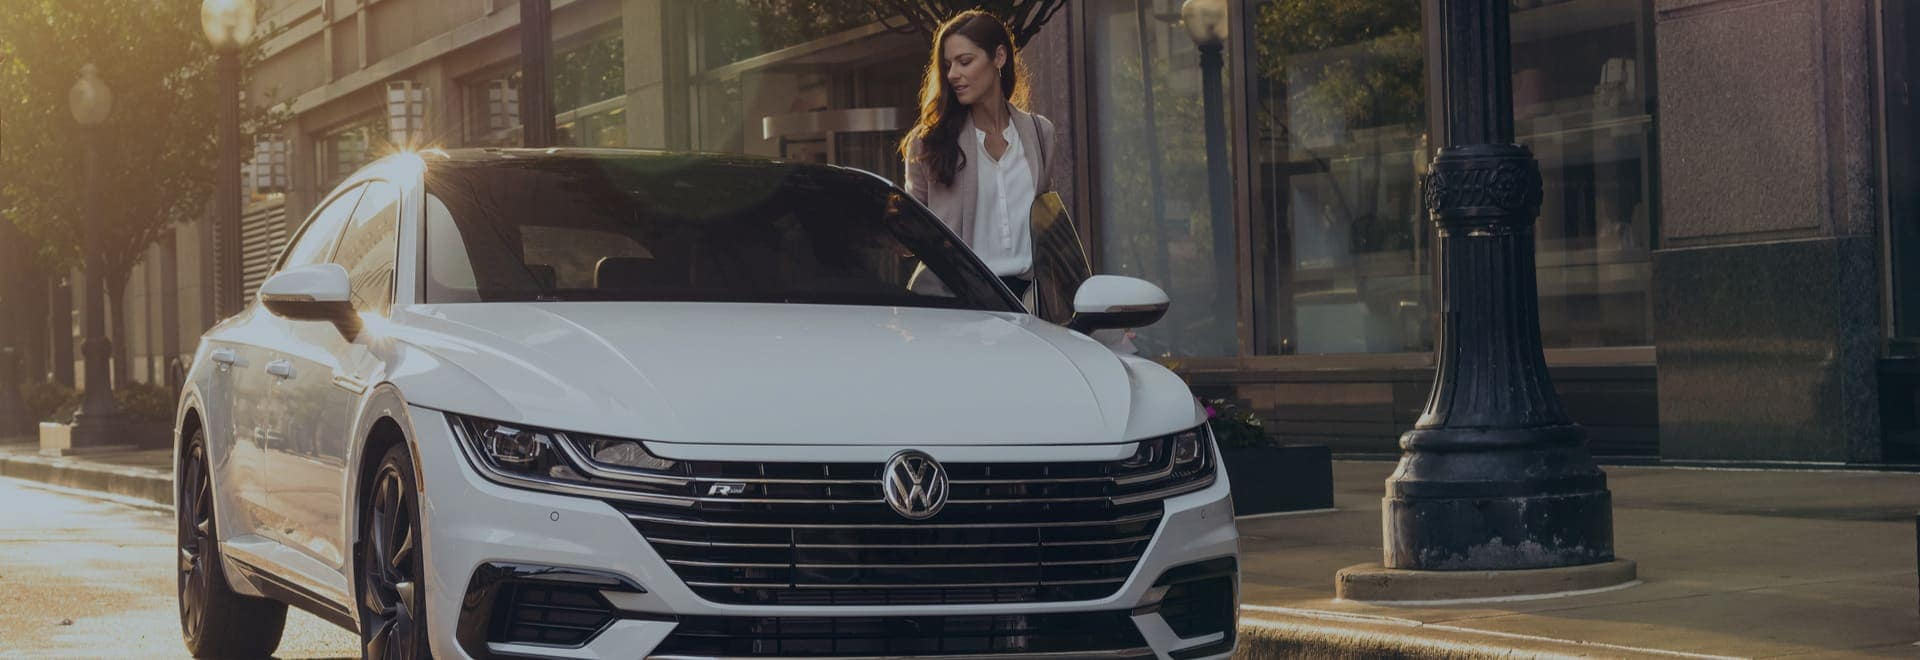 A woman is getting into the driver's side of a white VW sedan